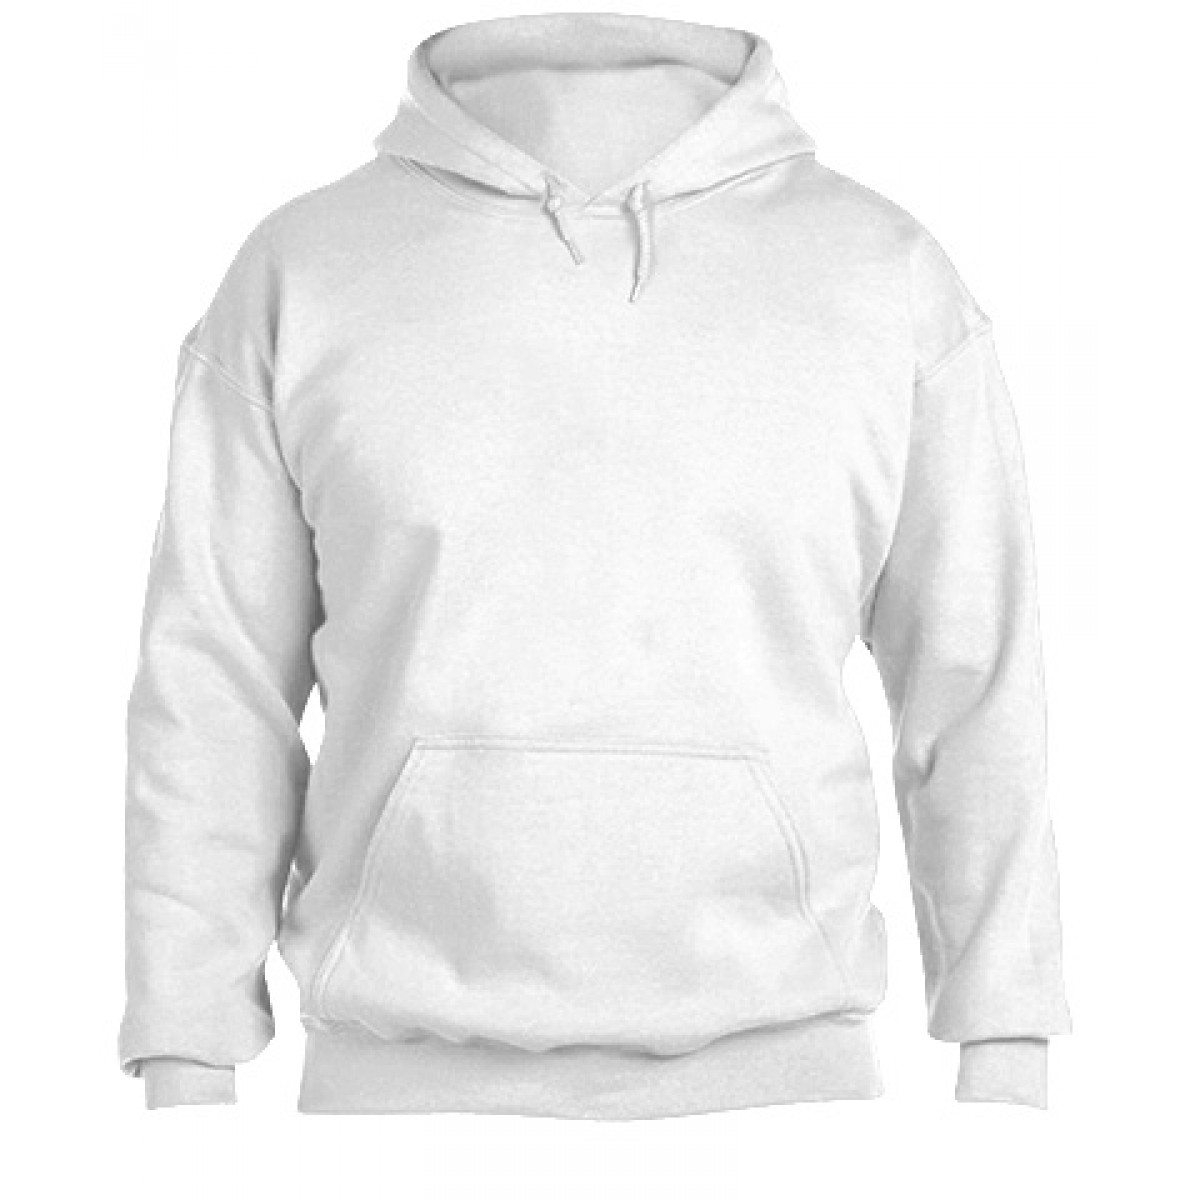 Hooded Sweatshirt 50/50 Heavy Blend -White-L